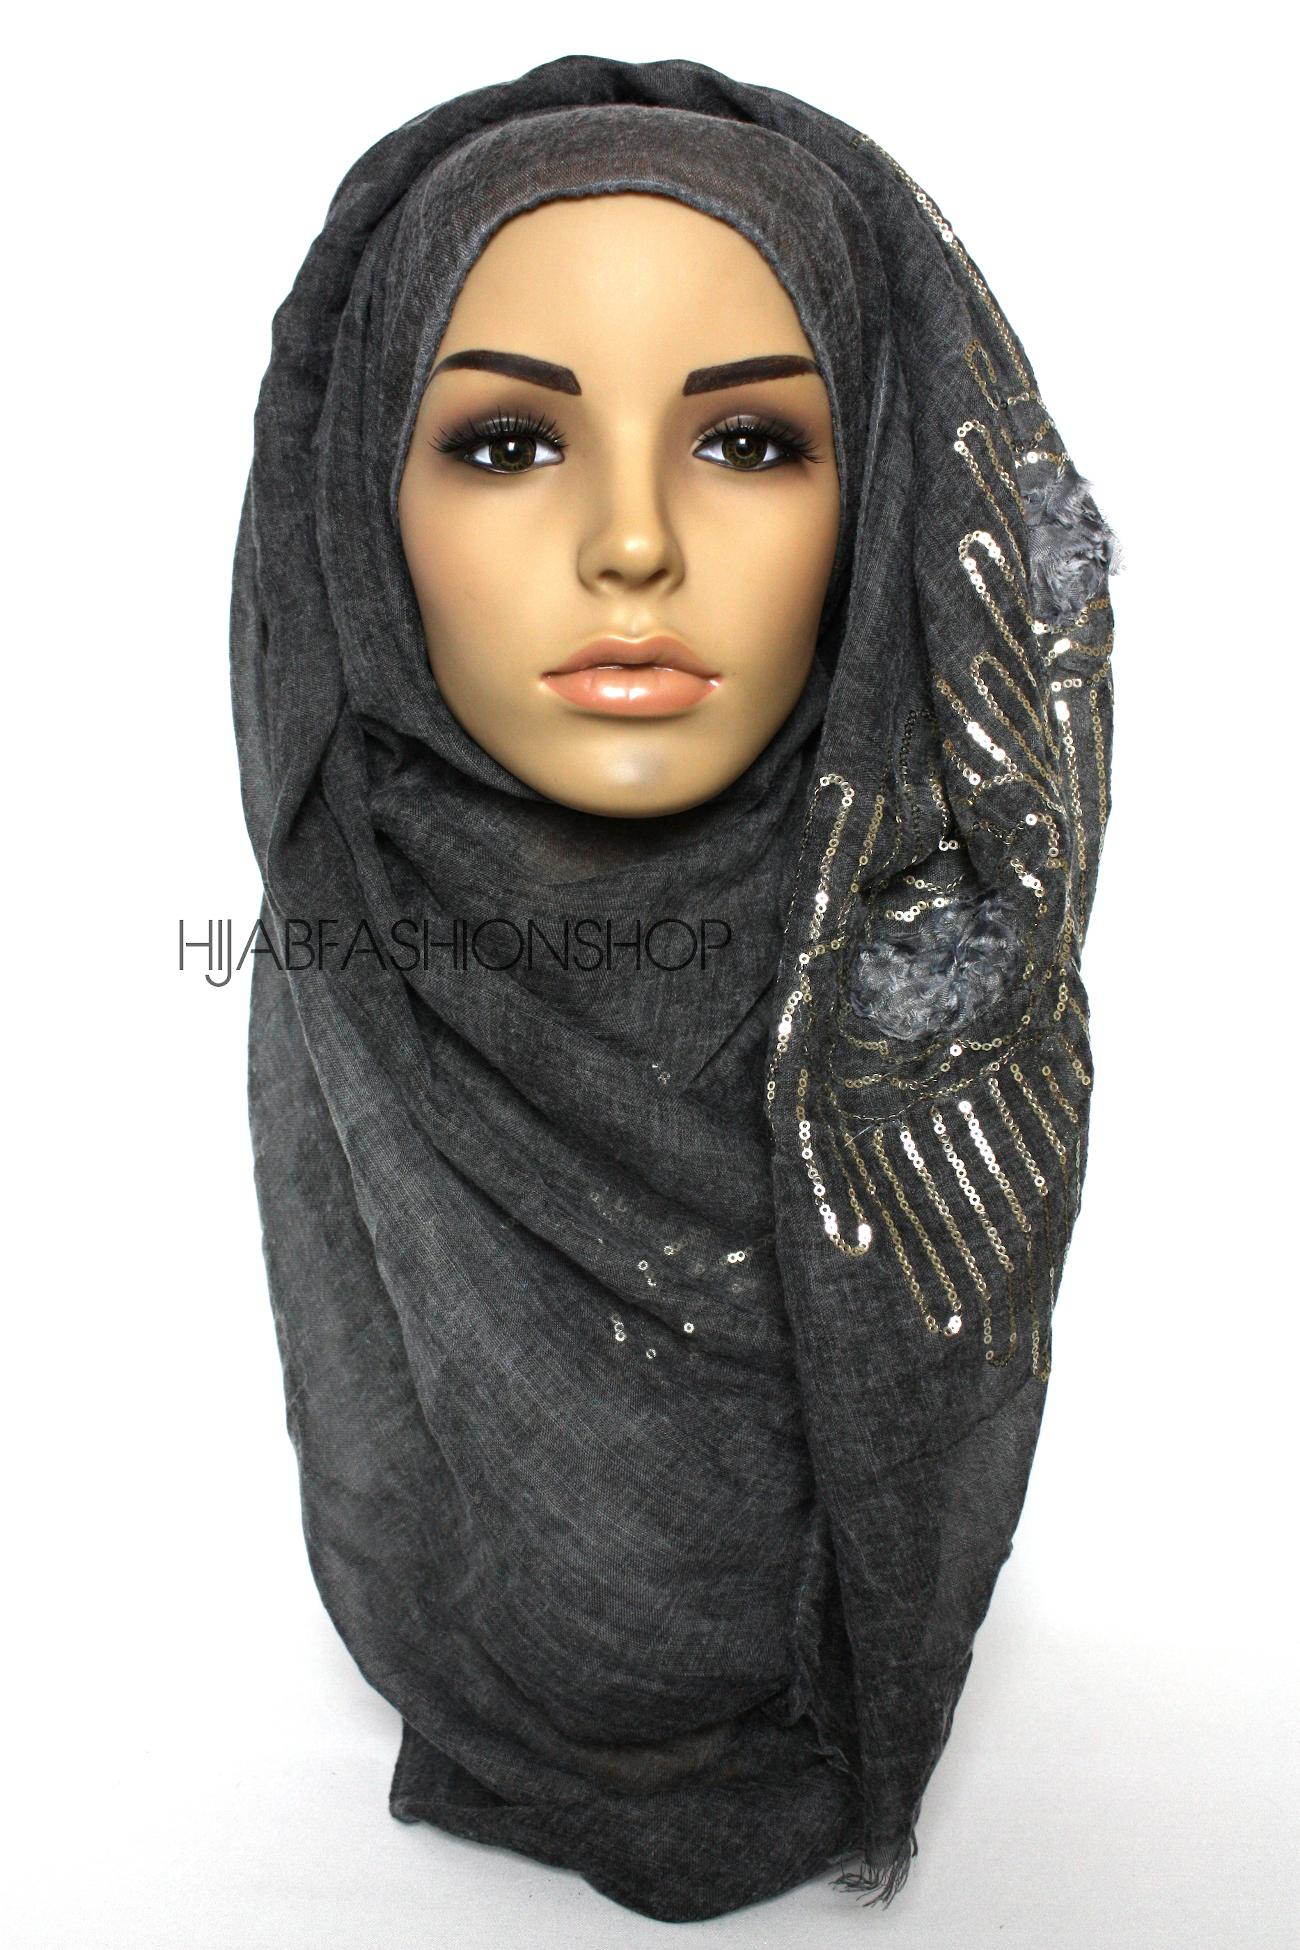 charcoal linen look hijab with frayed flower detail and gold sequins